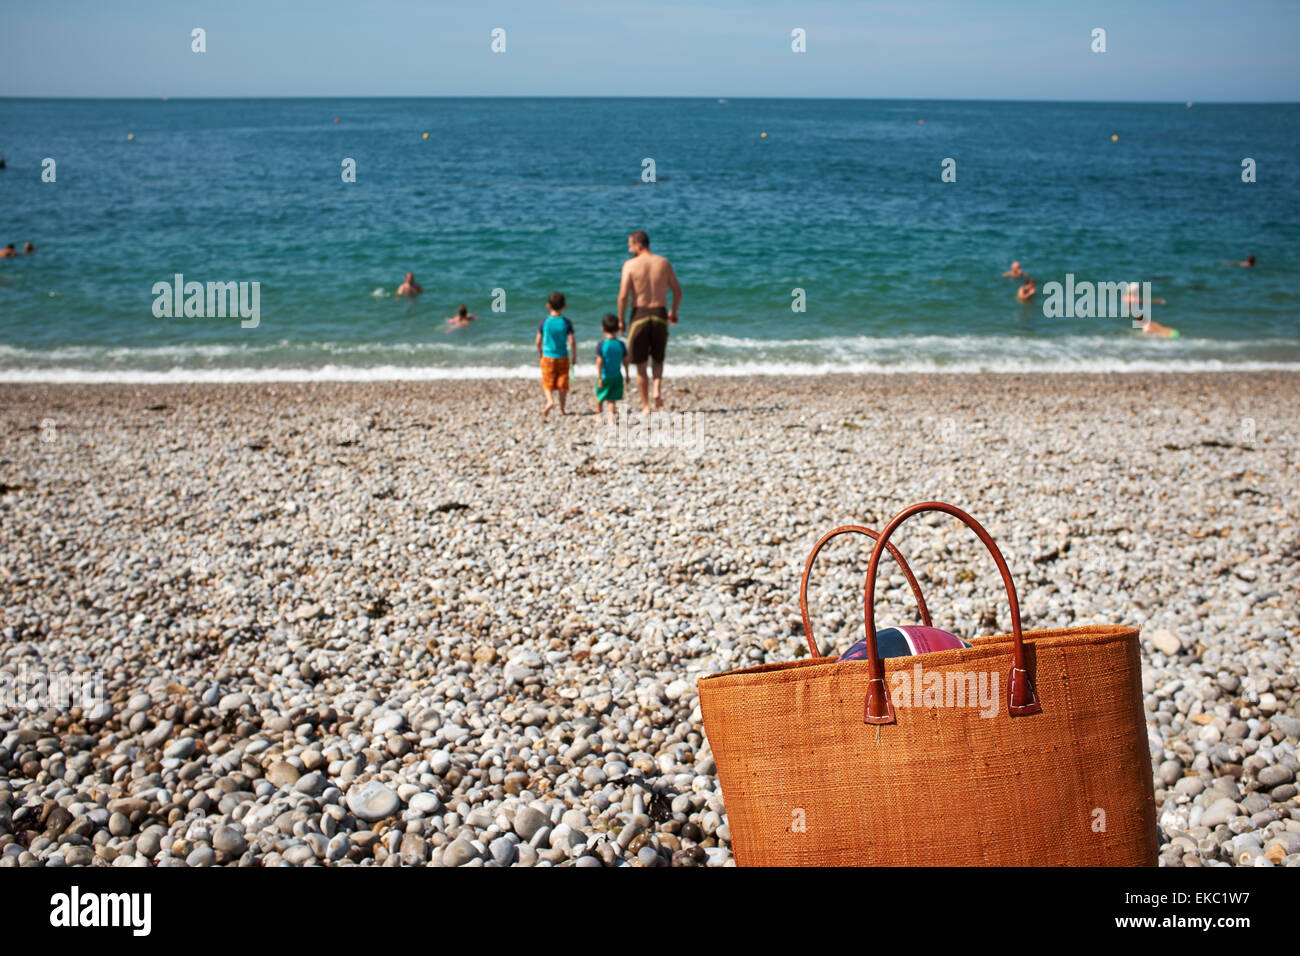 Rear view of father and two sons on beach, Normandy, France - Stock Image